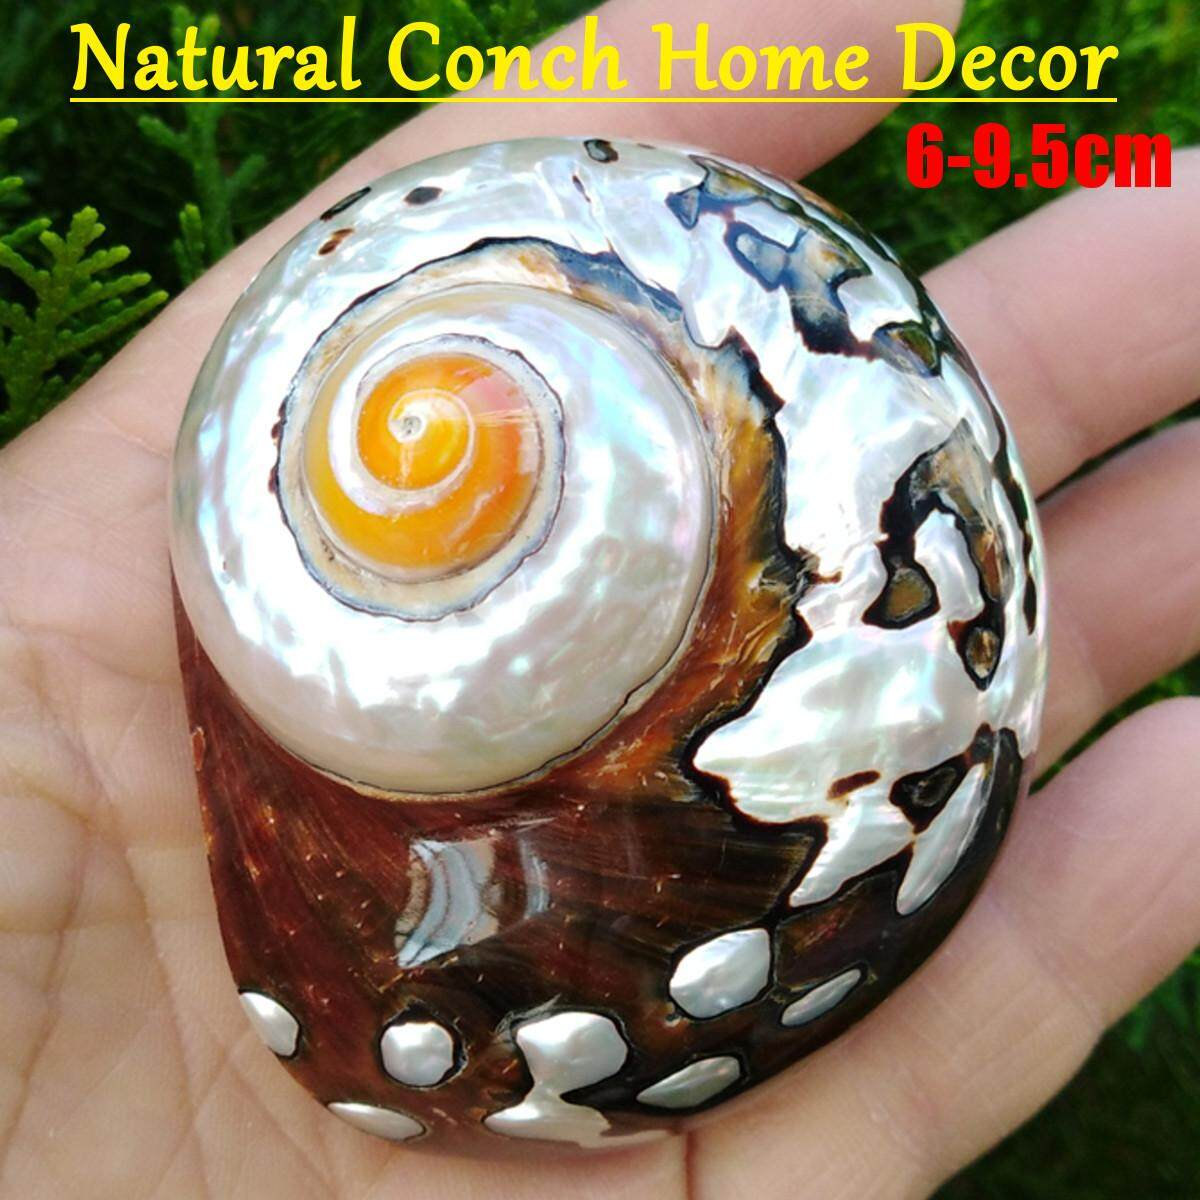 6-9.5cm Natural African Turban Sea Shell Coral Conch Snail Home Fish Tank Decor